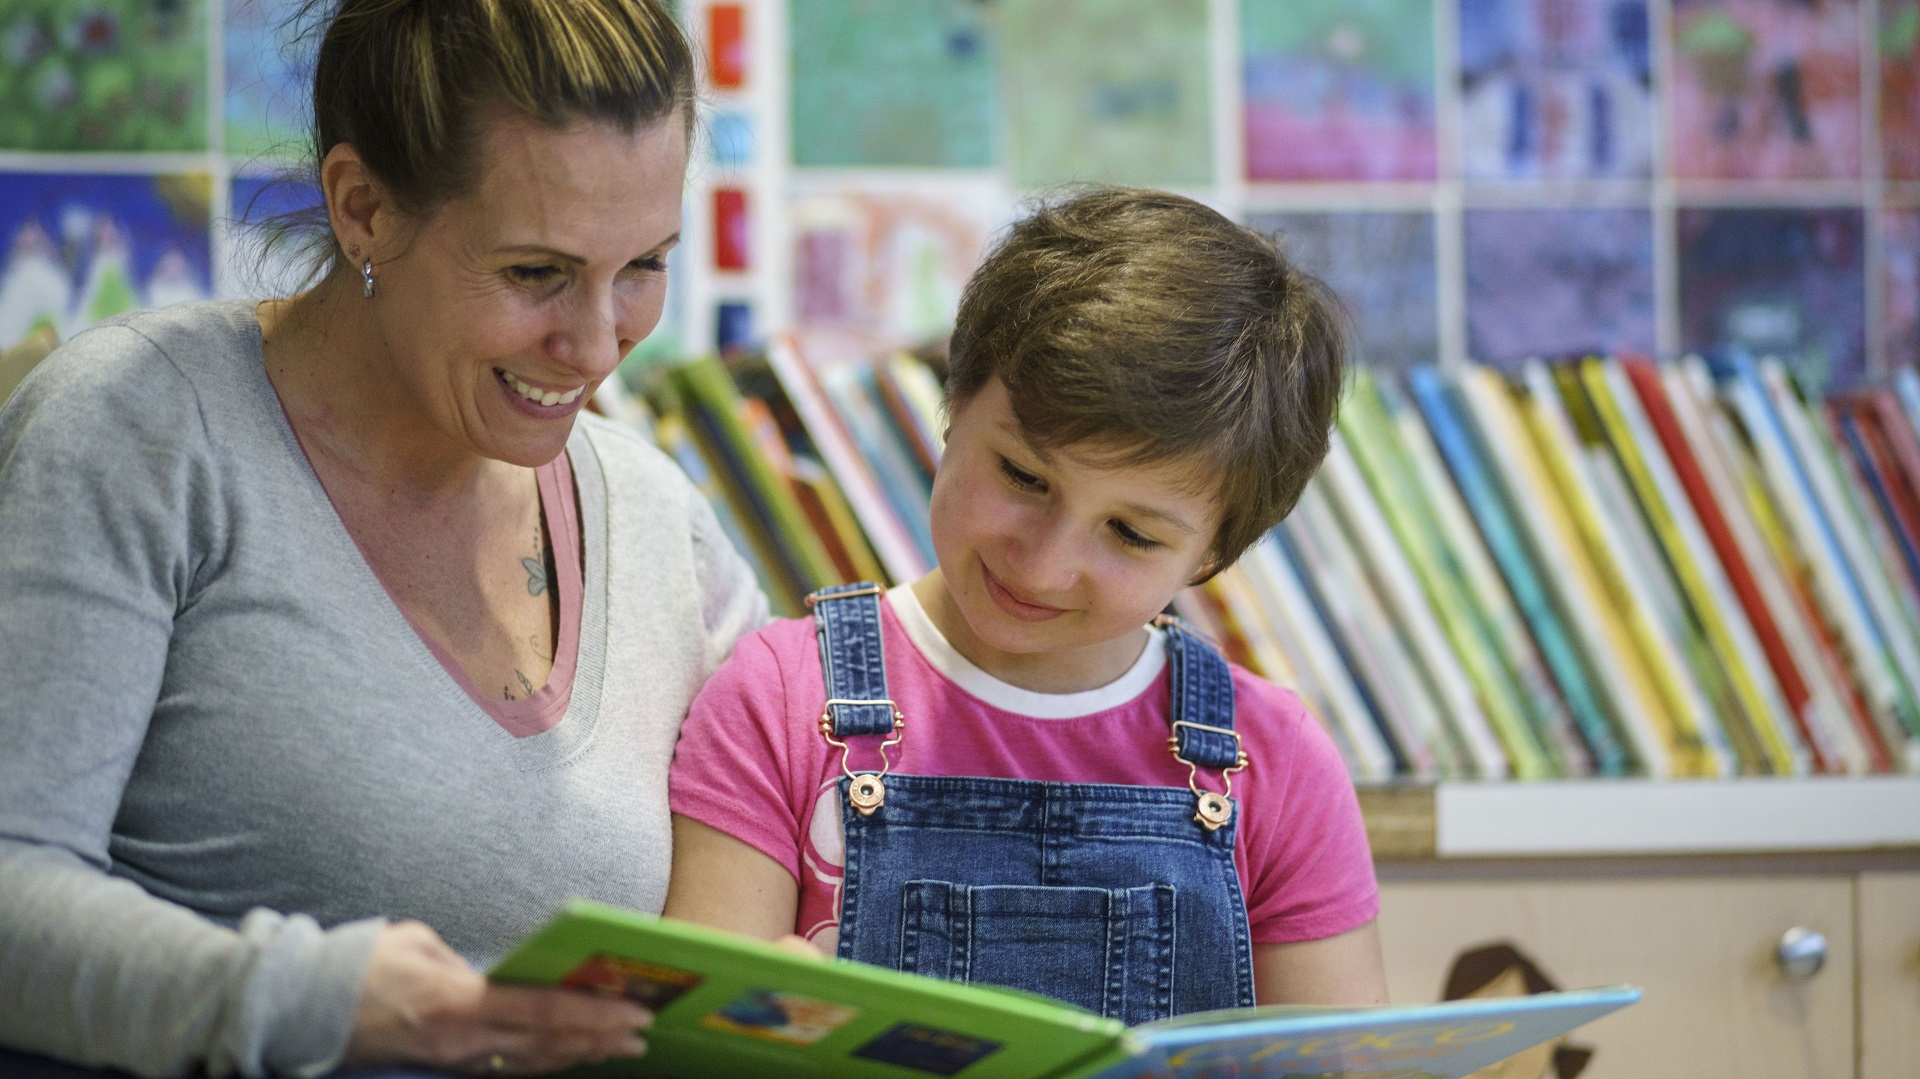 Any question on childhood cancer?